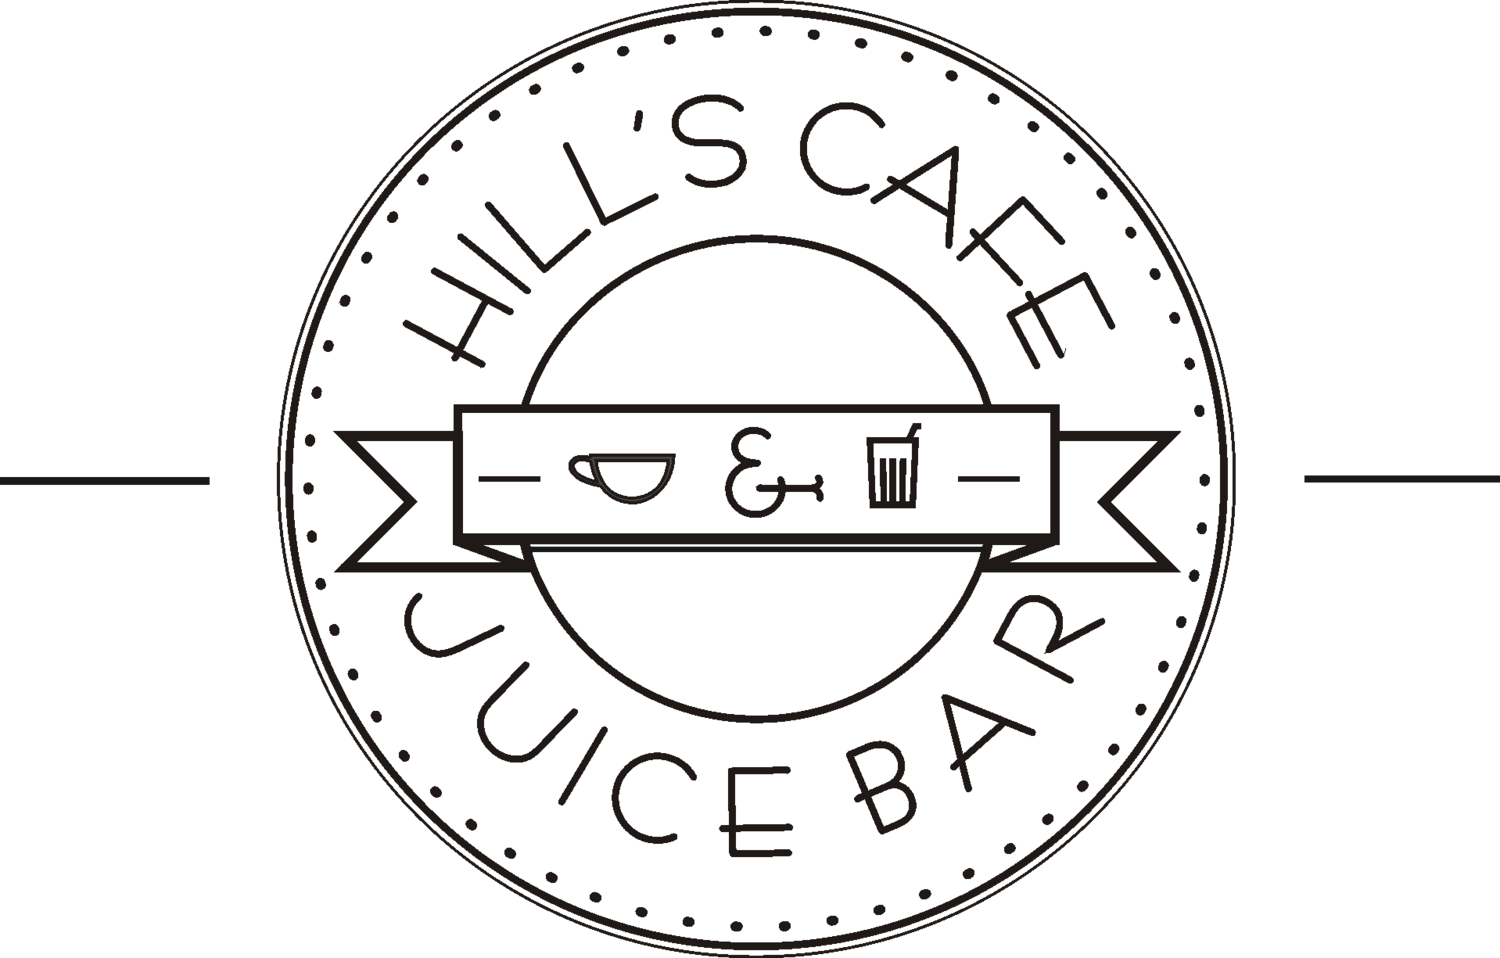 Hill's Cafe and Juice Bar